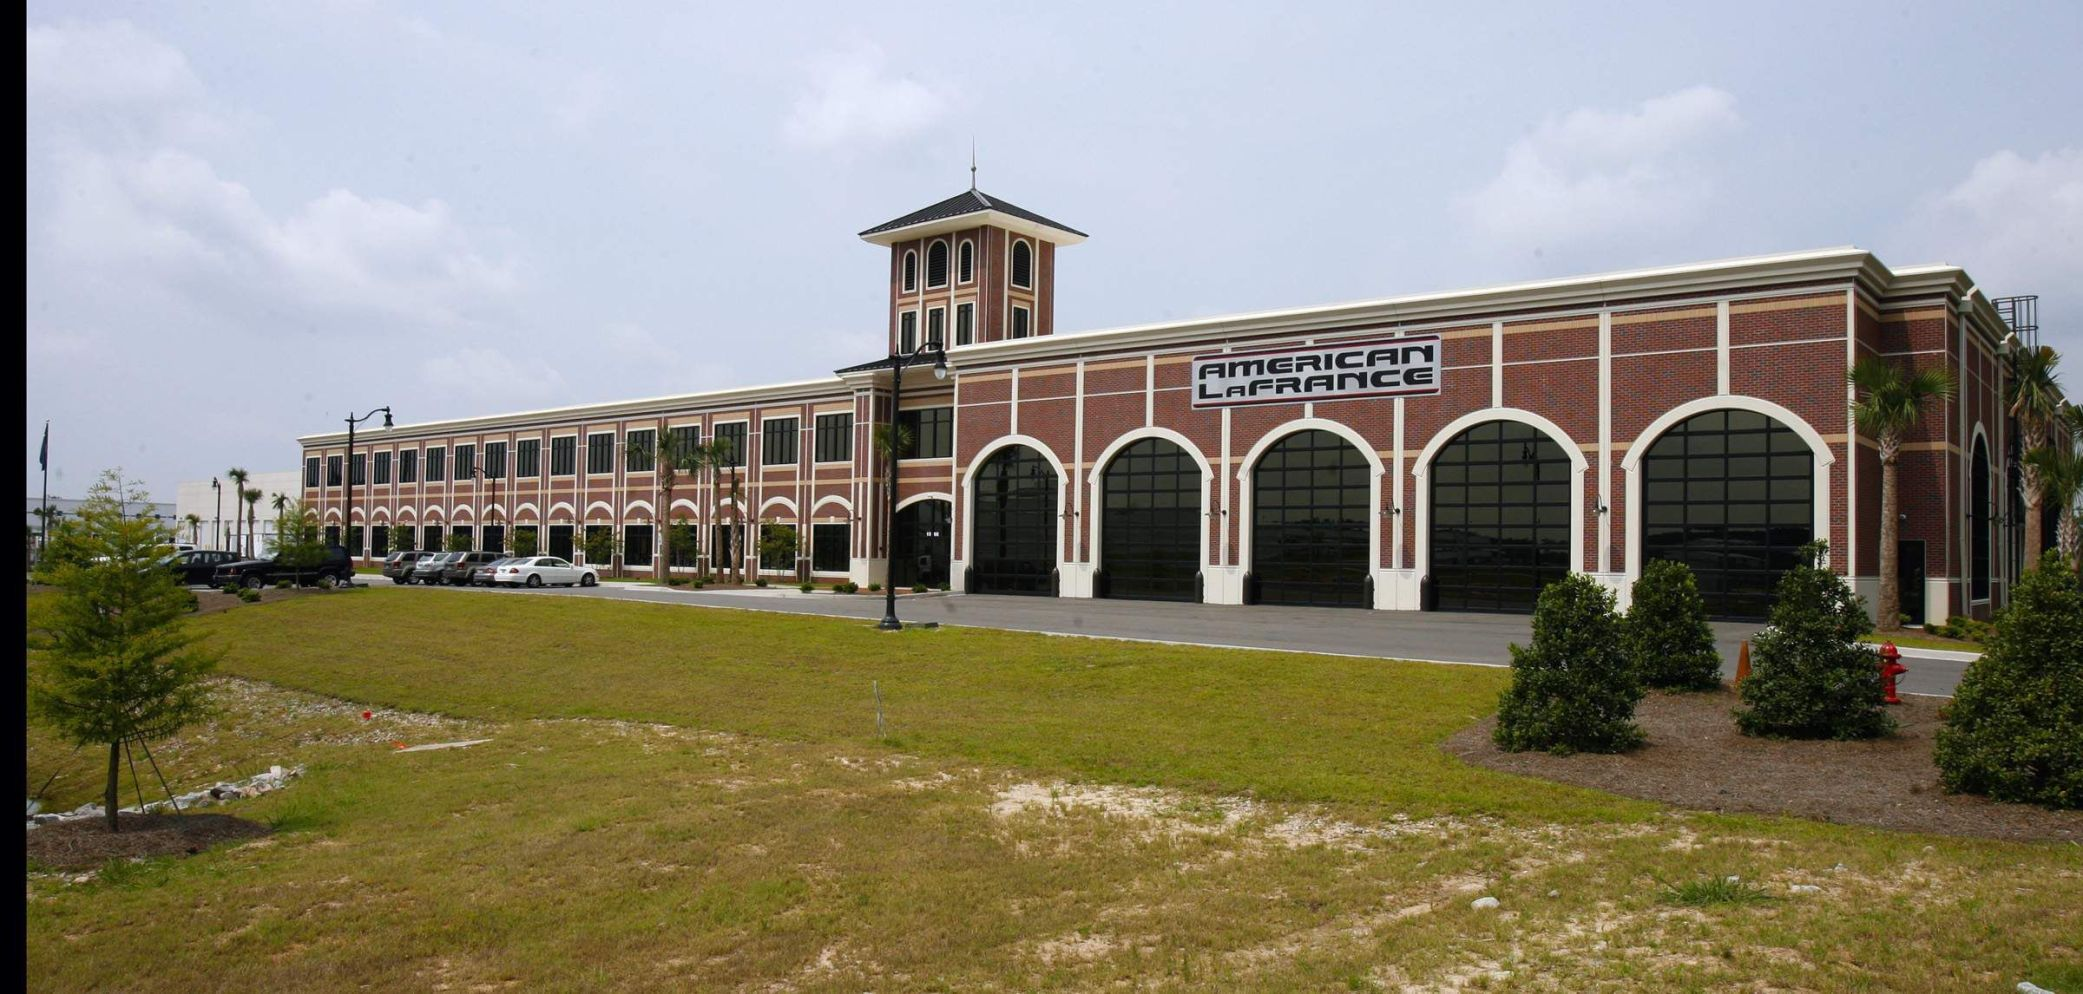 Bon Husqvarna Plans $29M Orangeburg Project Lawn And Garden Machinery  Manufacturer To Expand With